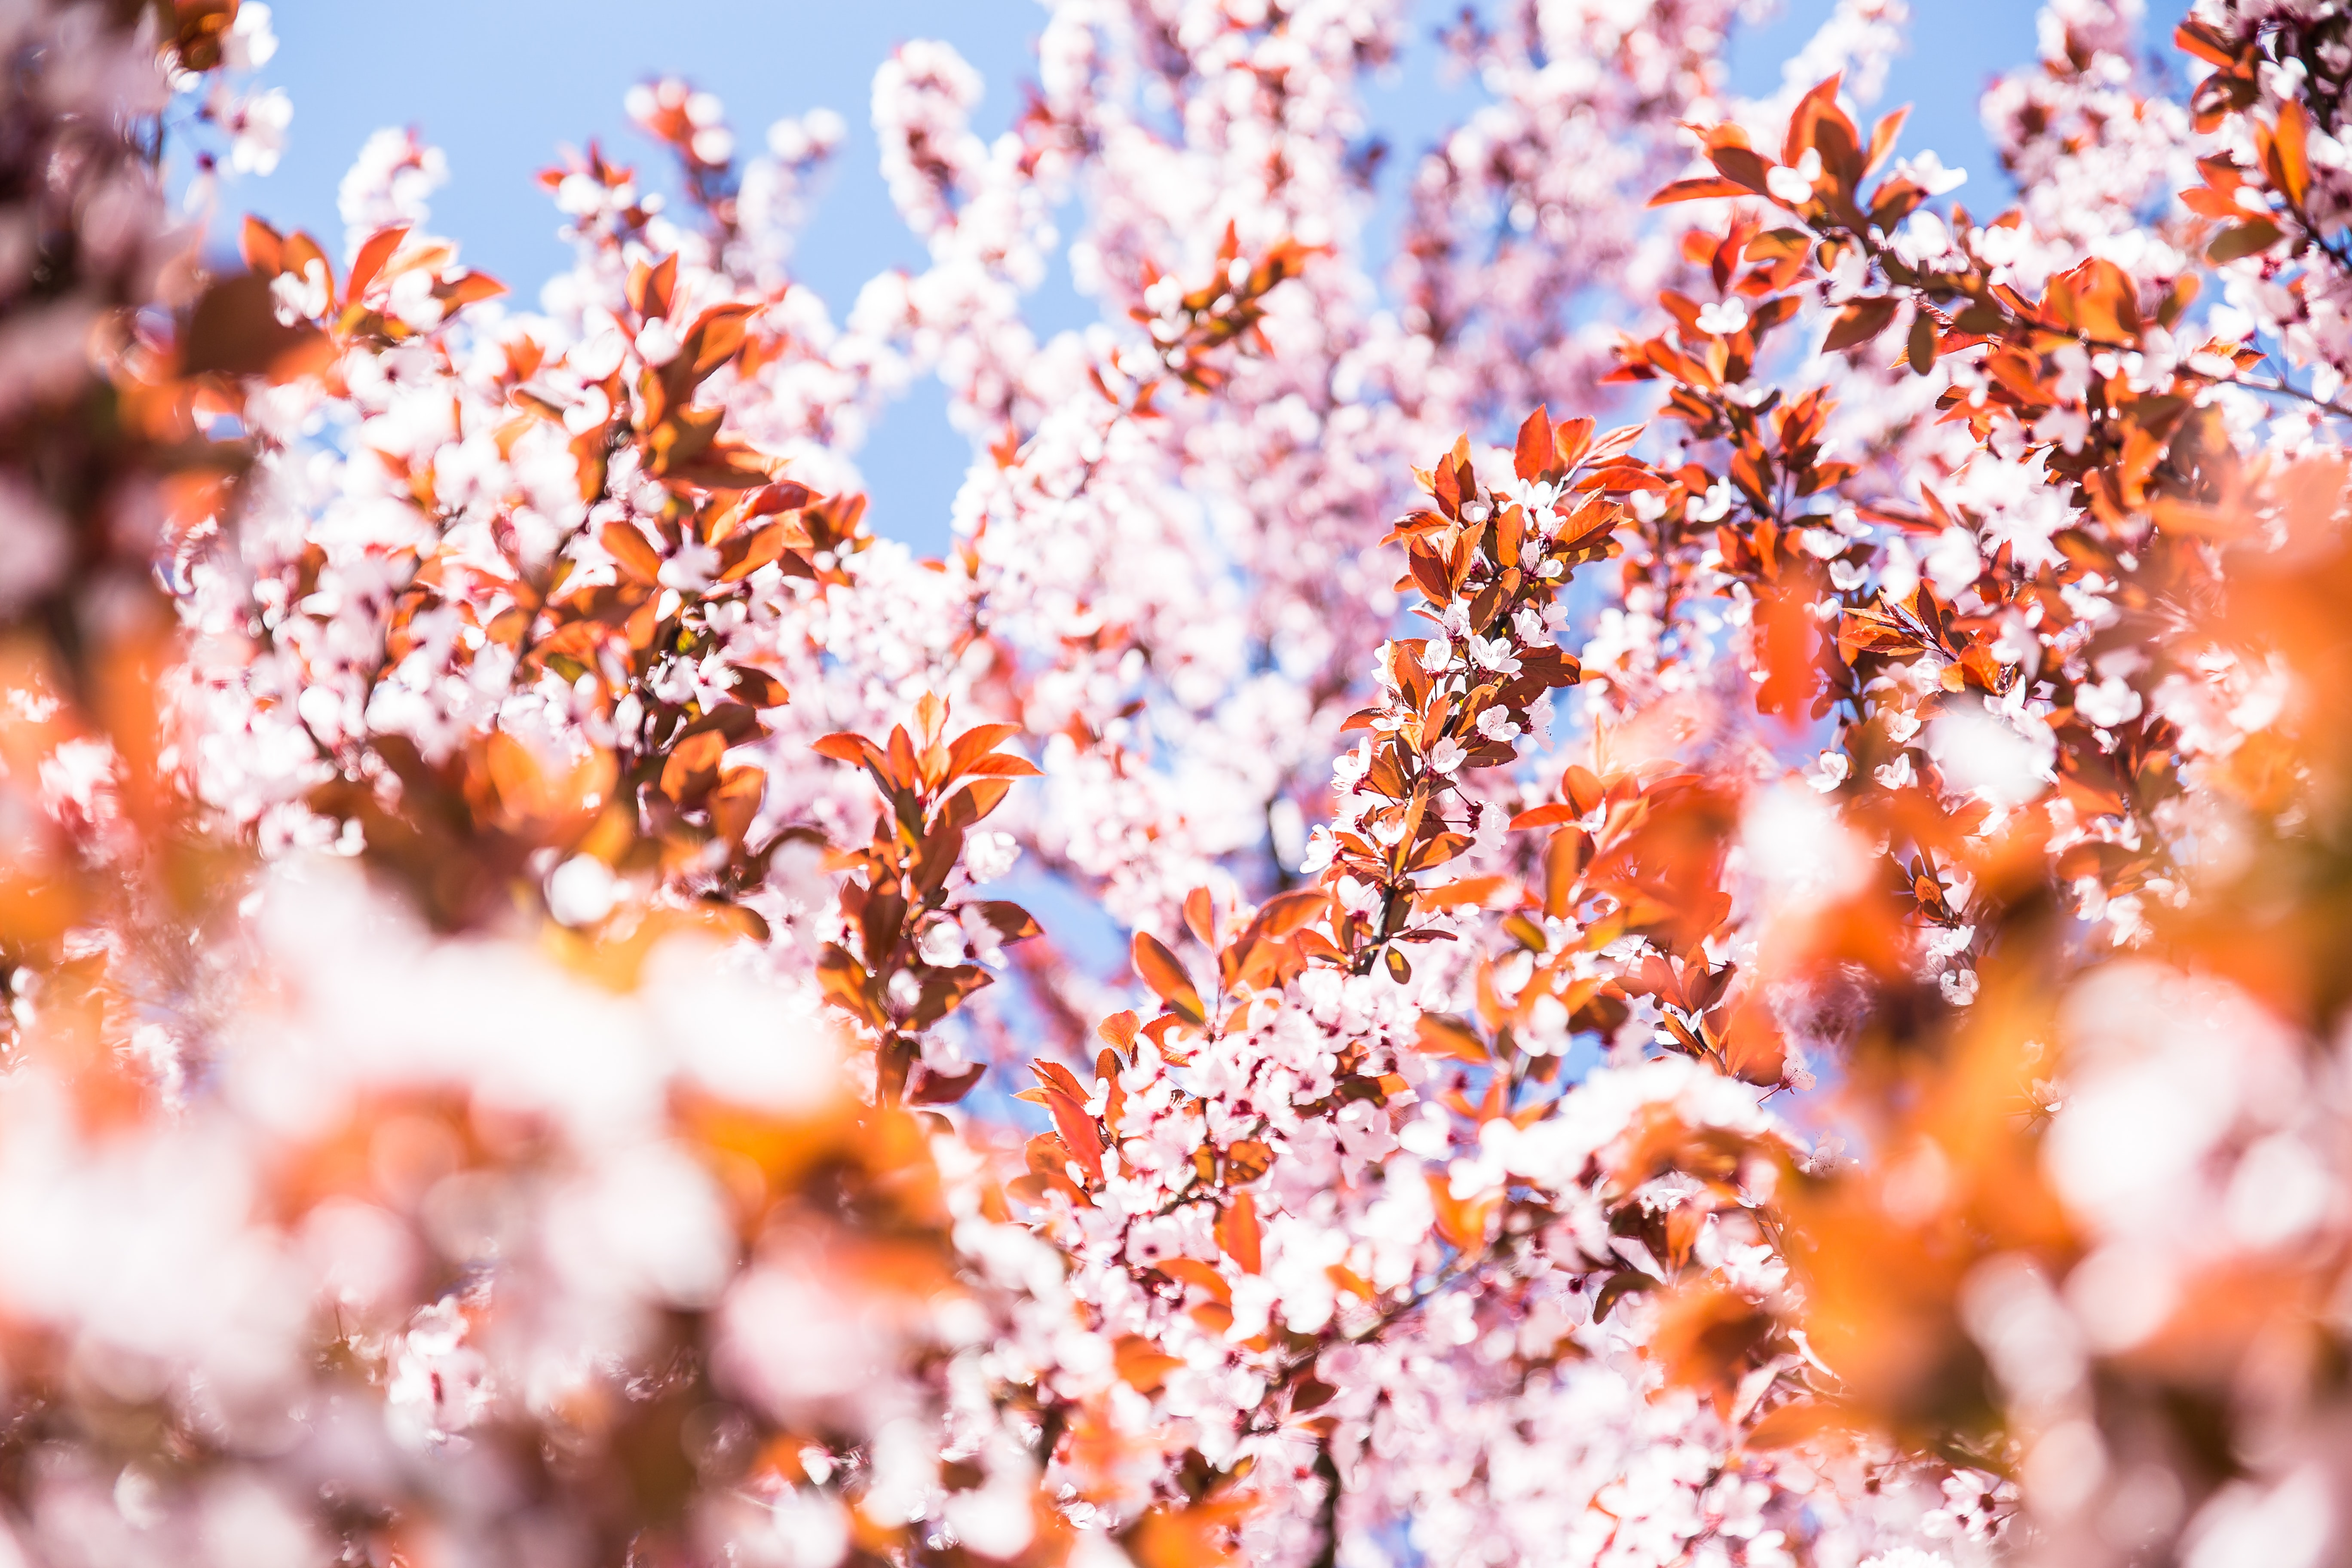 selective focus photography of pink petaled flowers at daytime